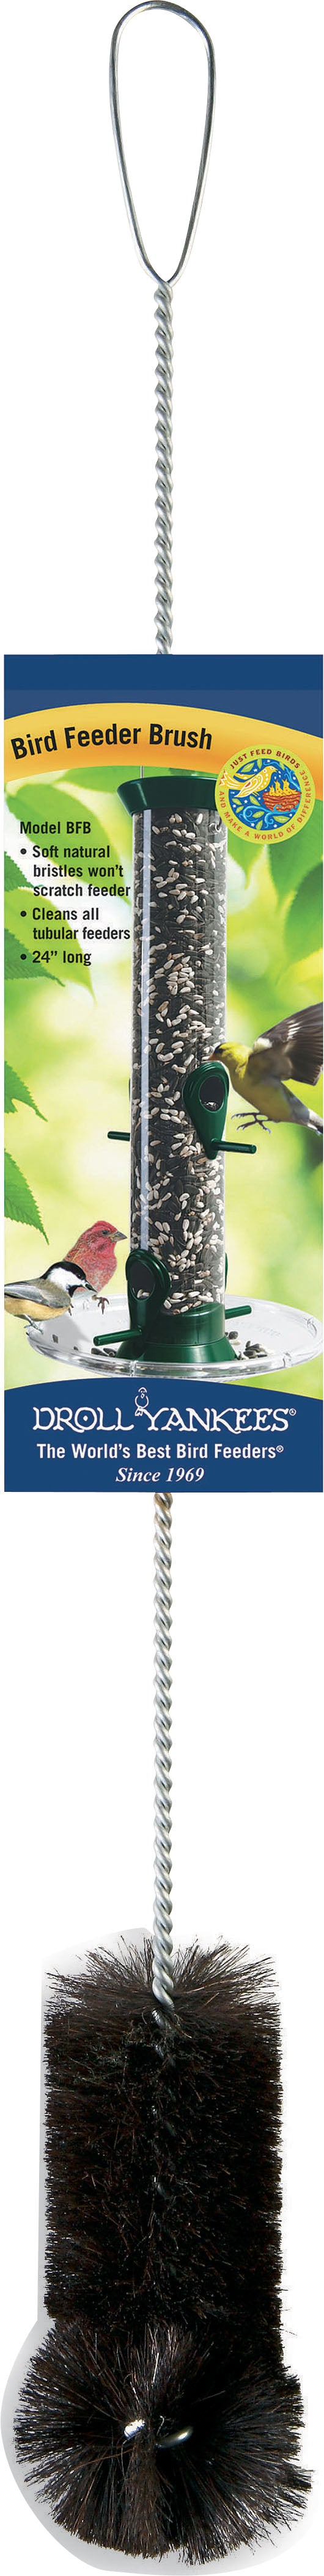 Droll Yankees Inc - Feeder Brush For Tube Feeders